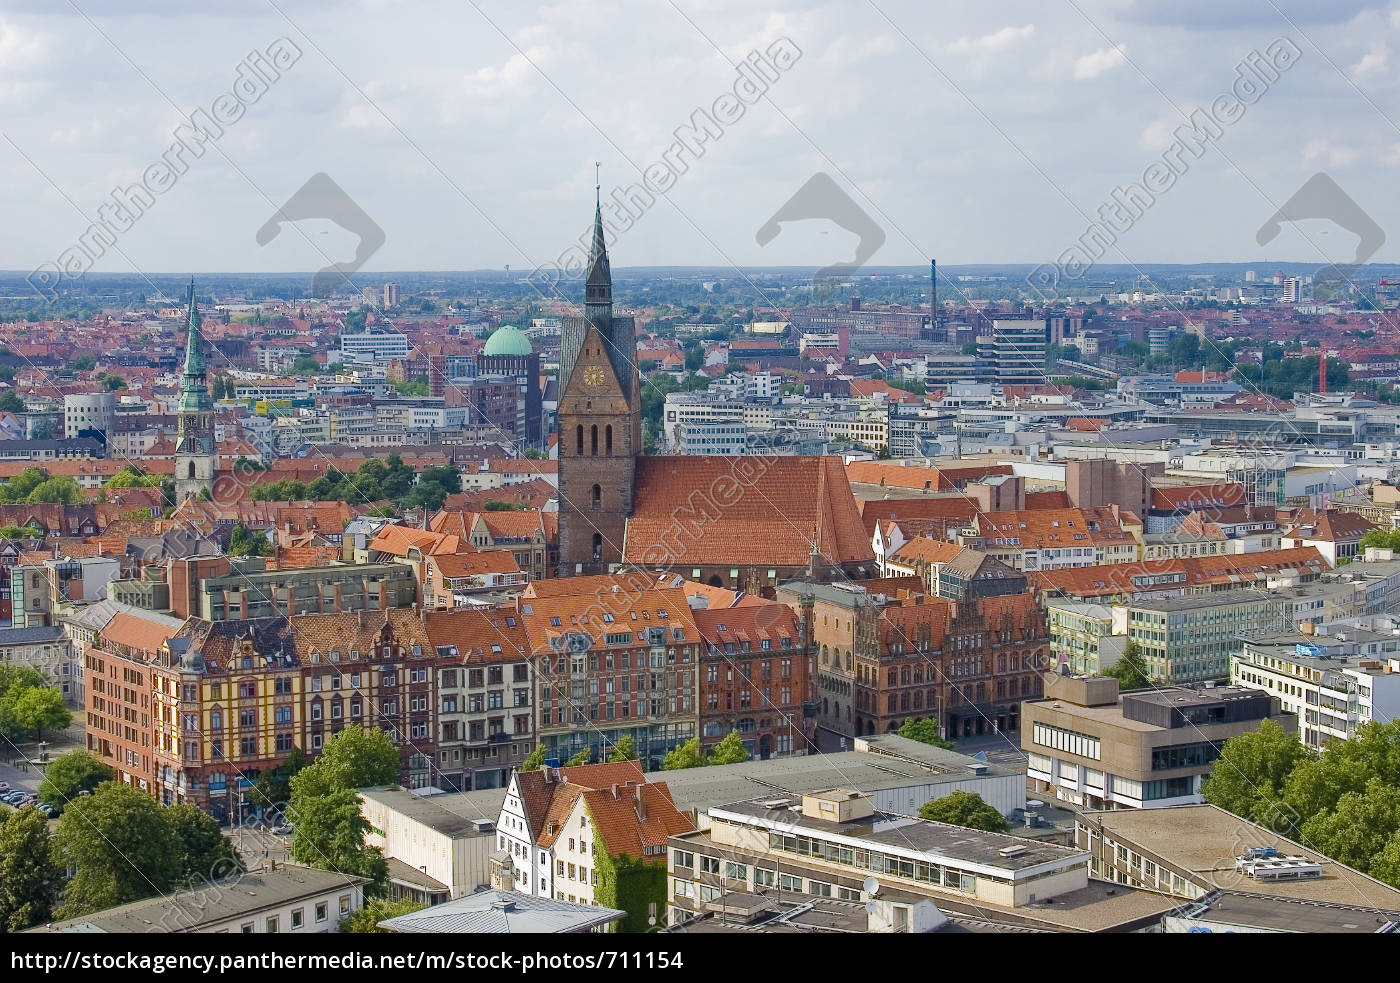 ..., about, hannover, .. - 711154